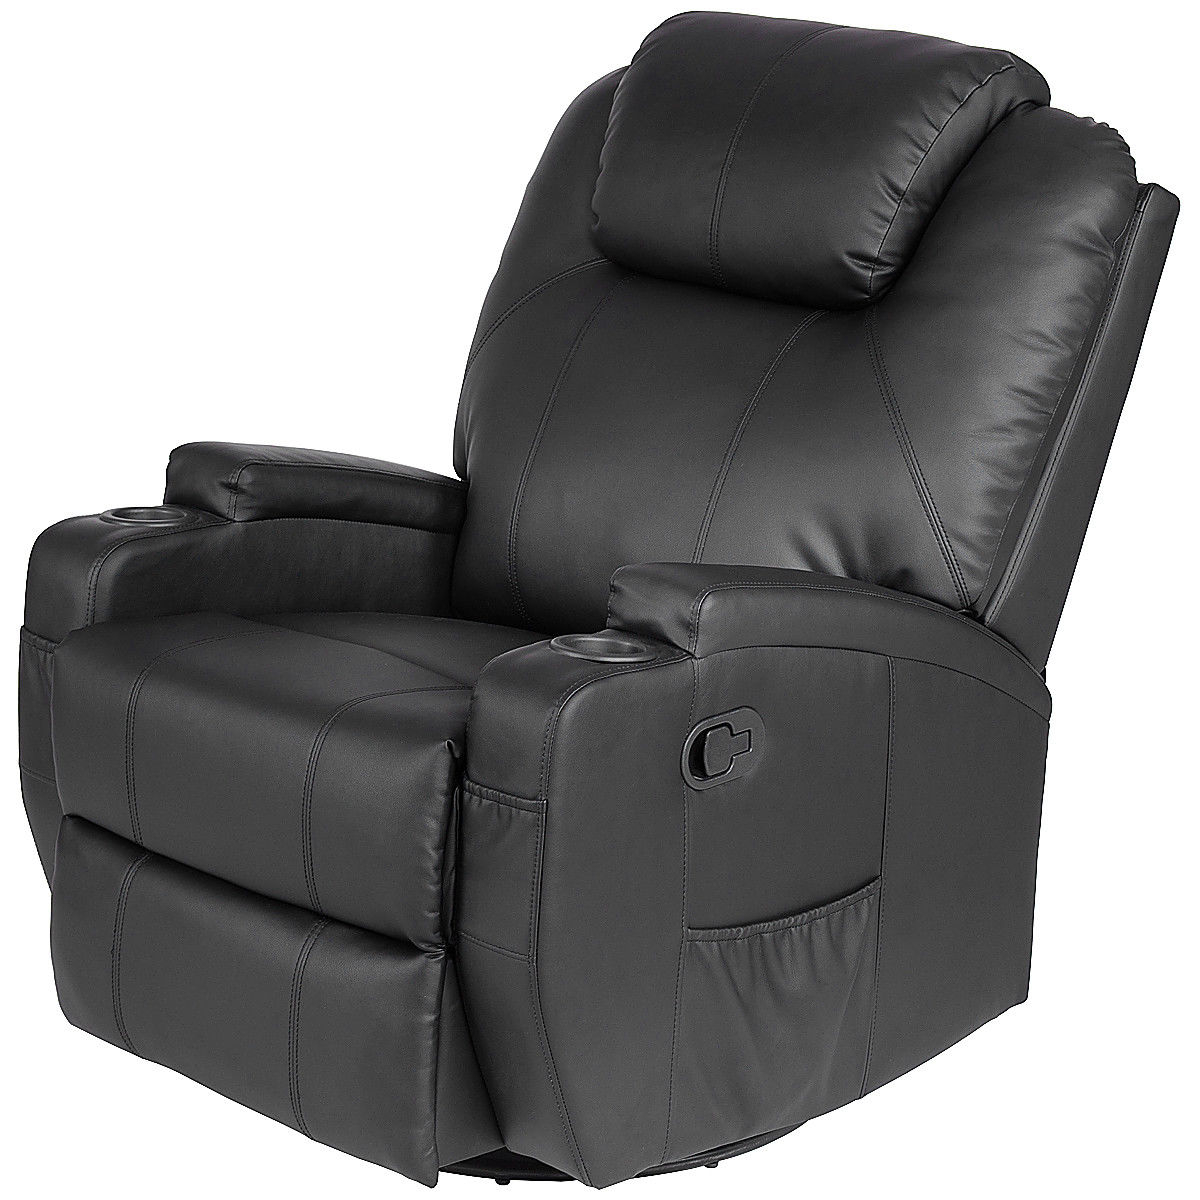 Sofa Chair Recliner Intended For Most Popular Costway: Costway Electric Massage Recliner Sofa Chair Heated  (View 14 of 20)